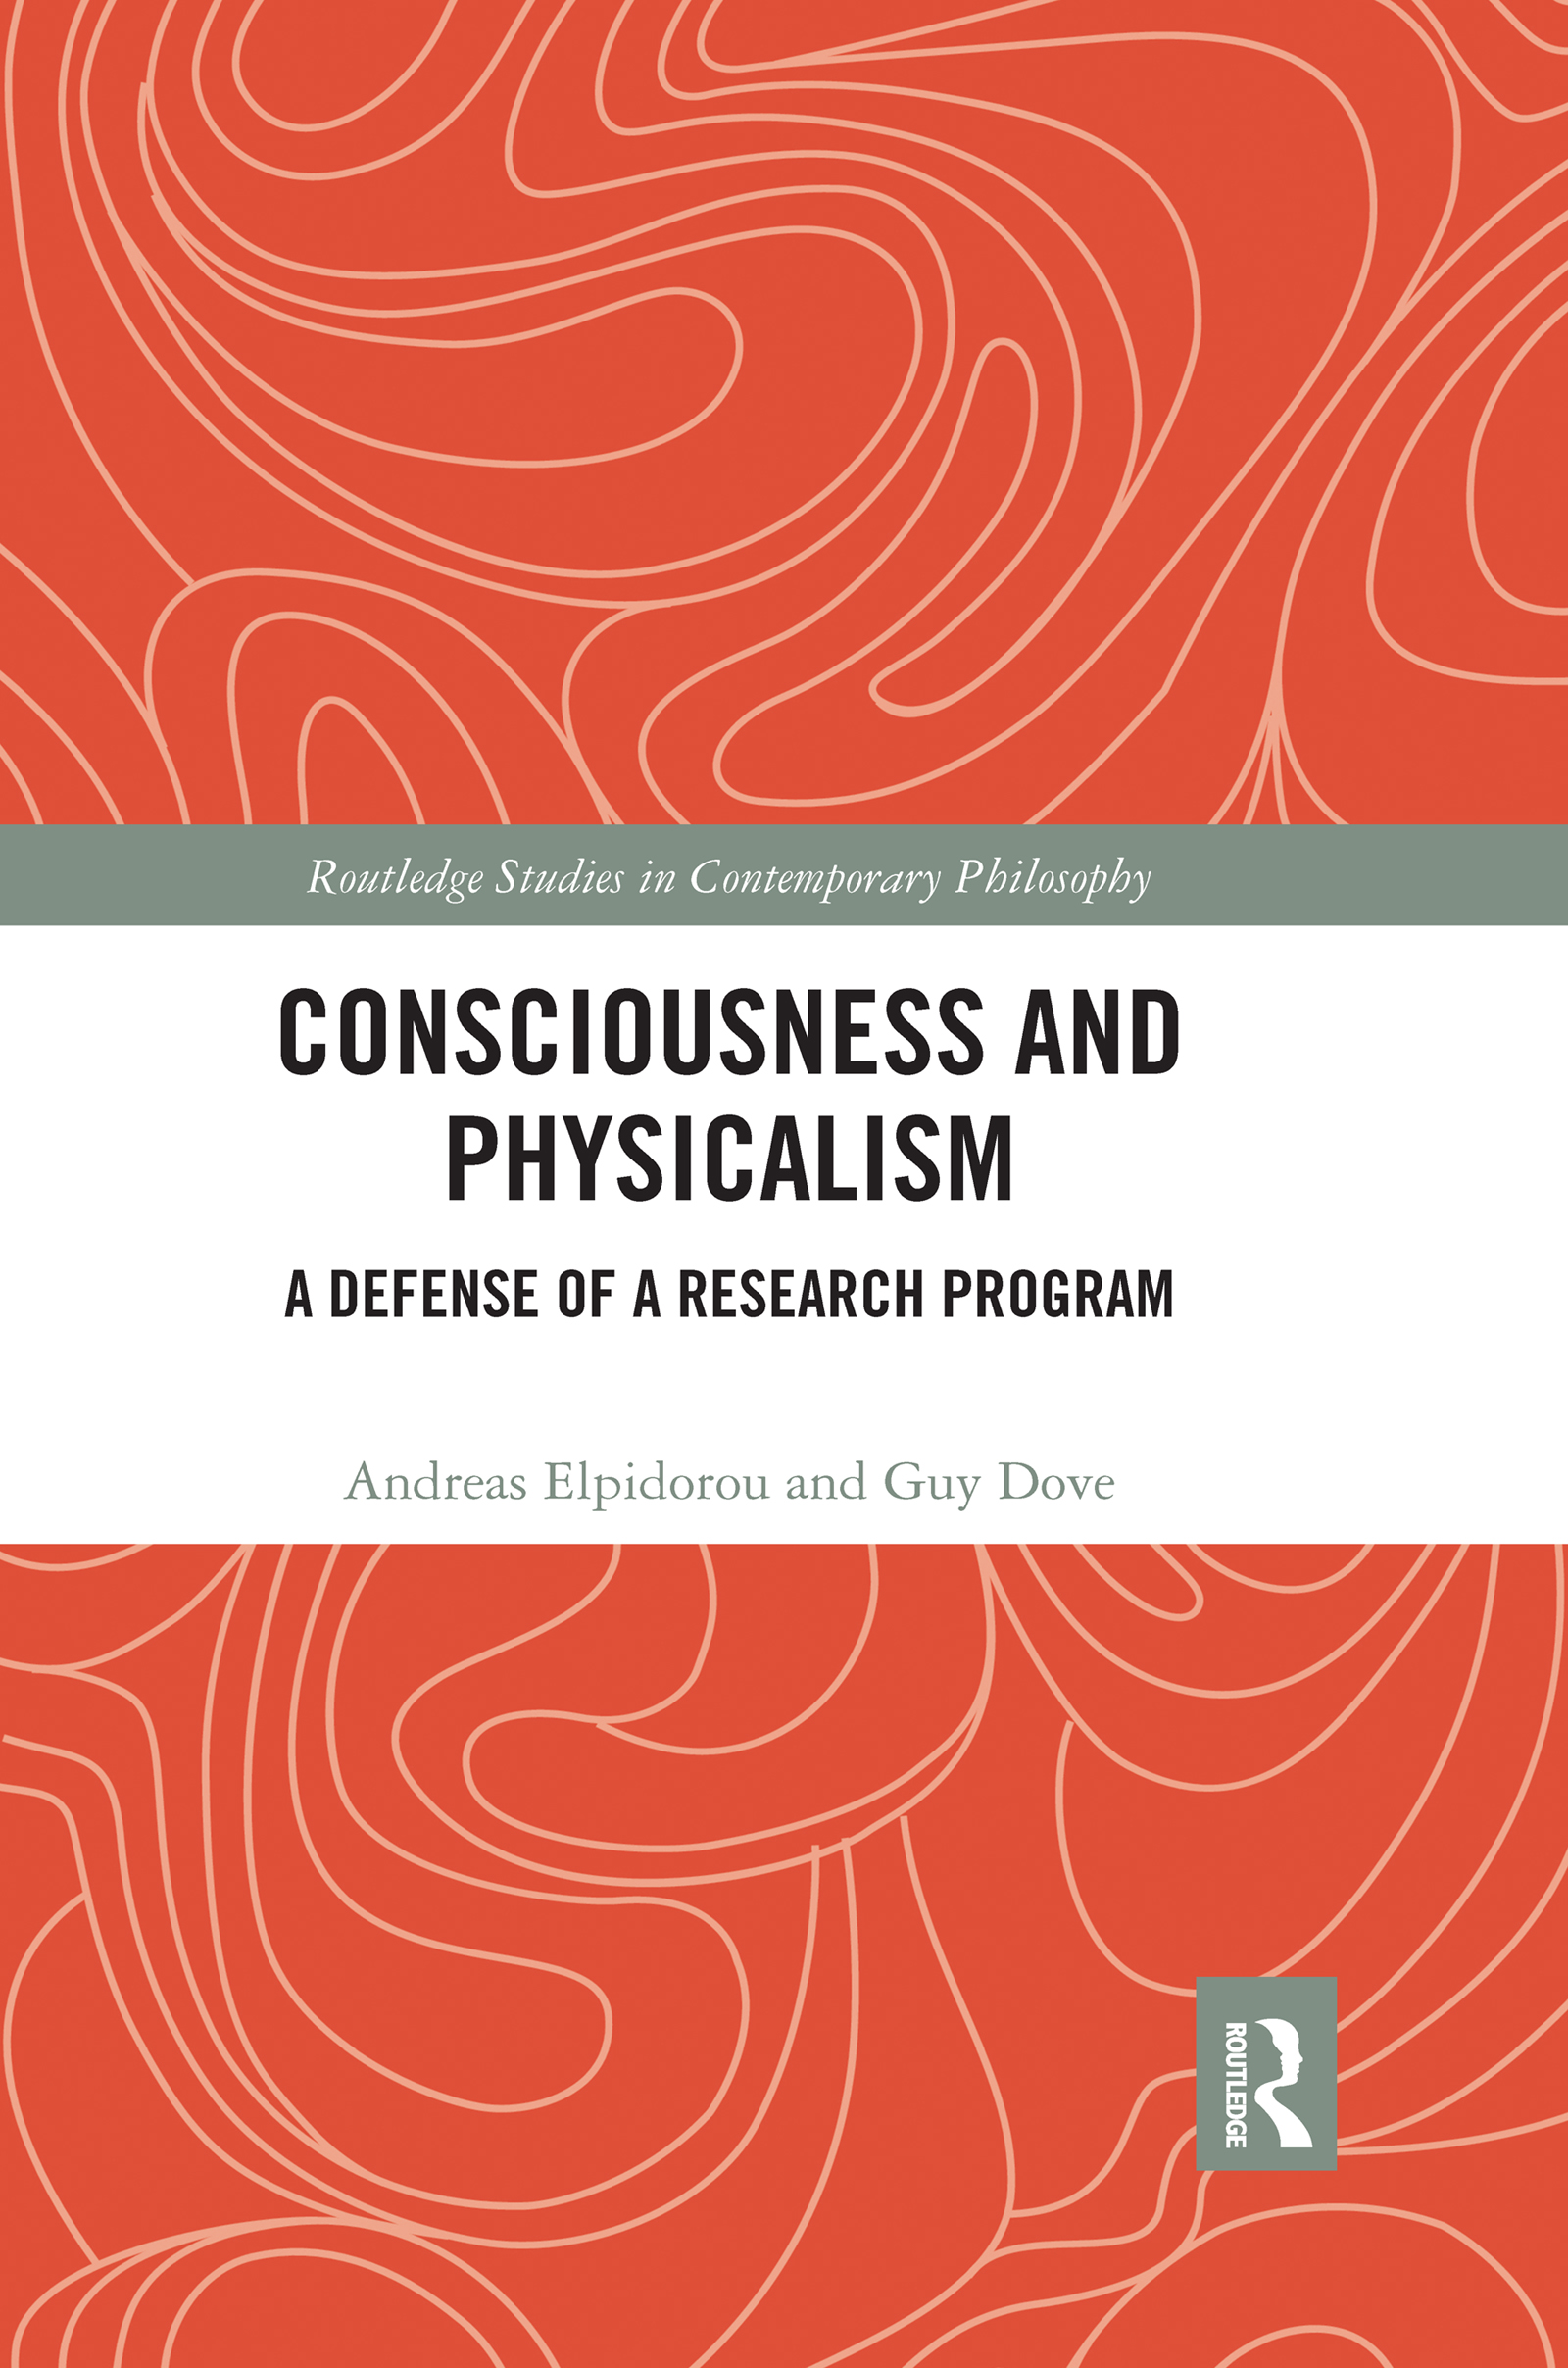 Consciousness and Physicalism